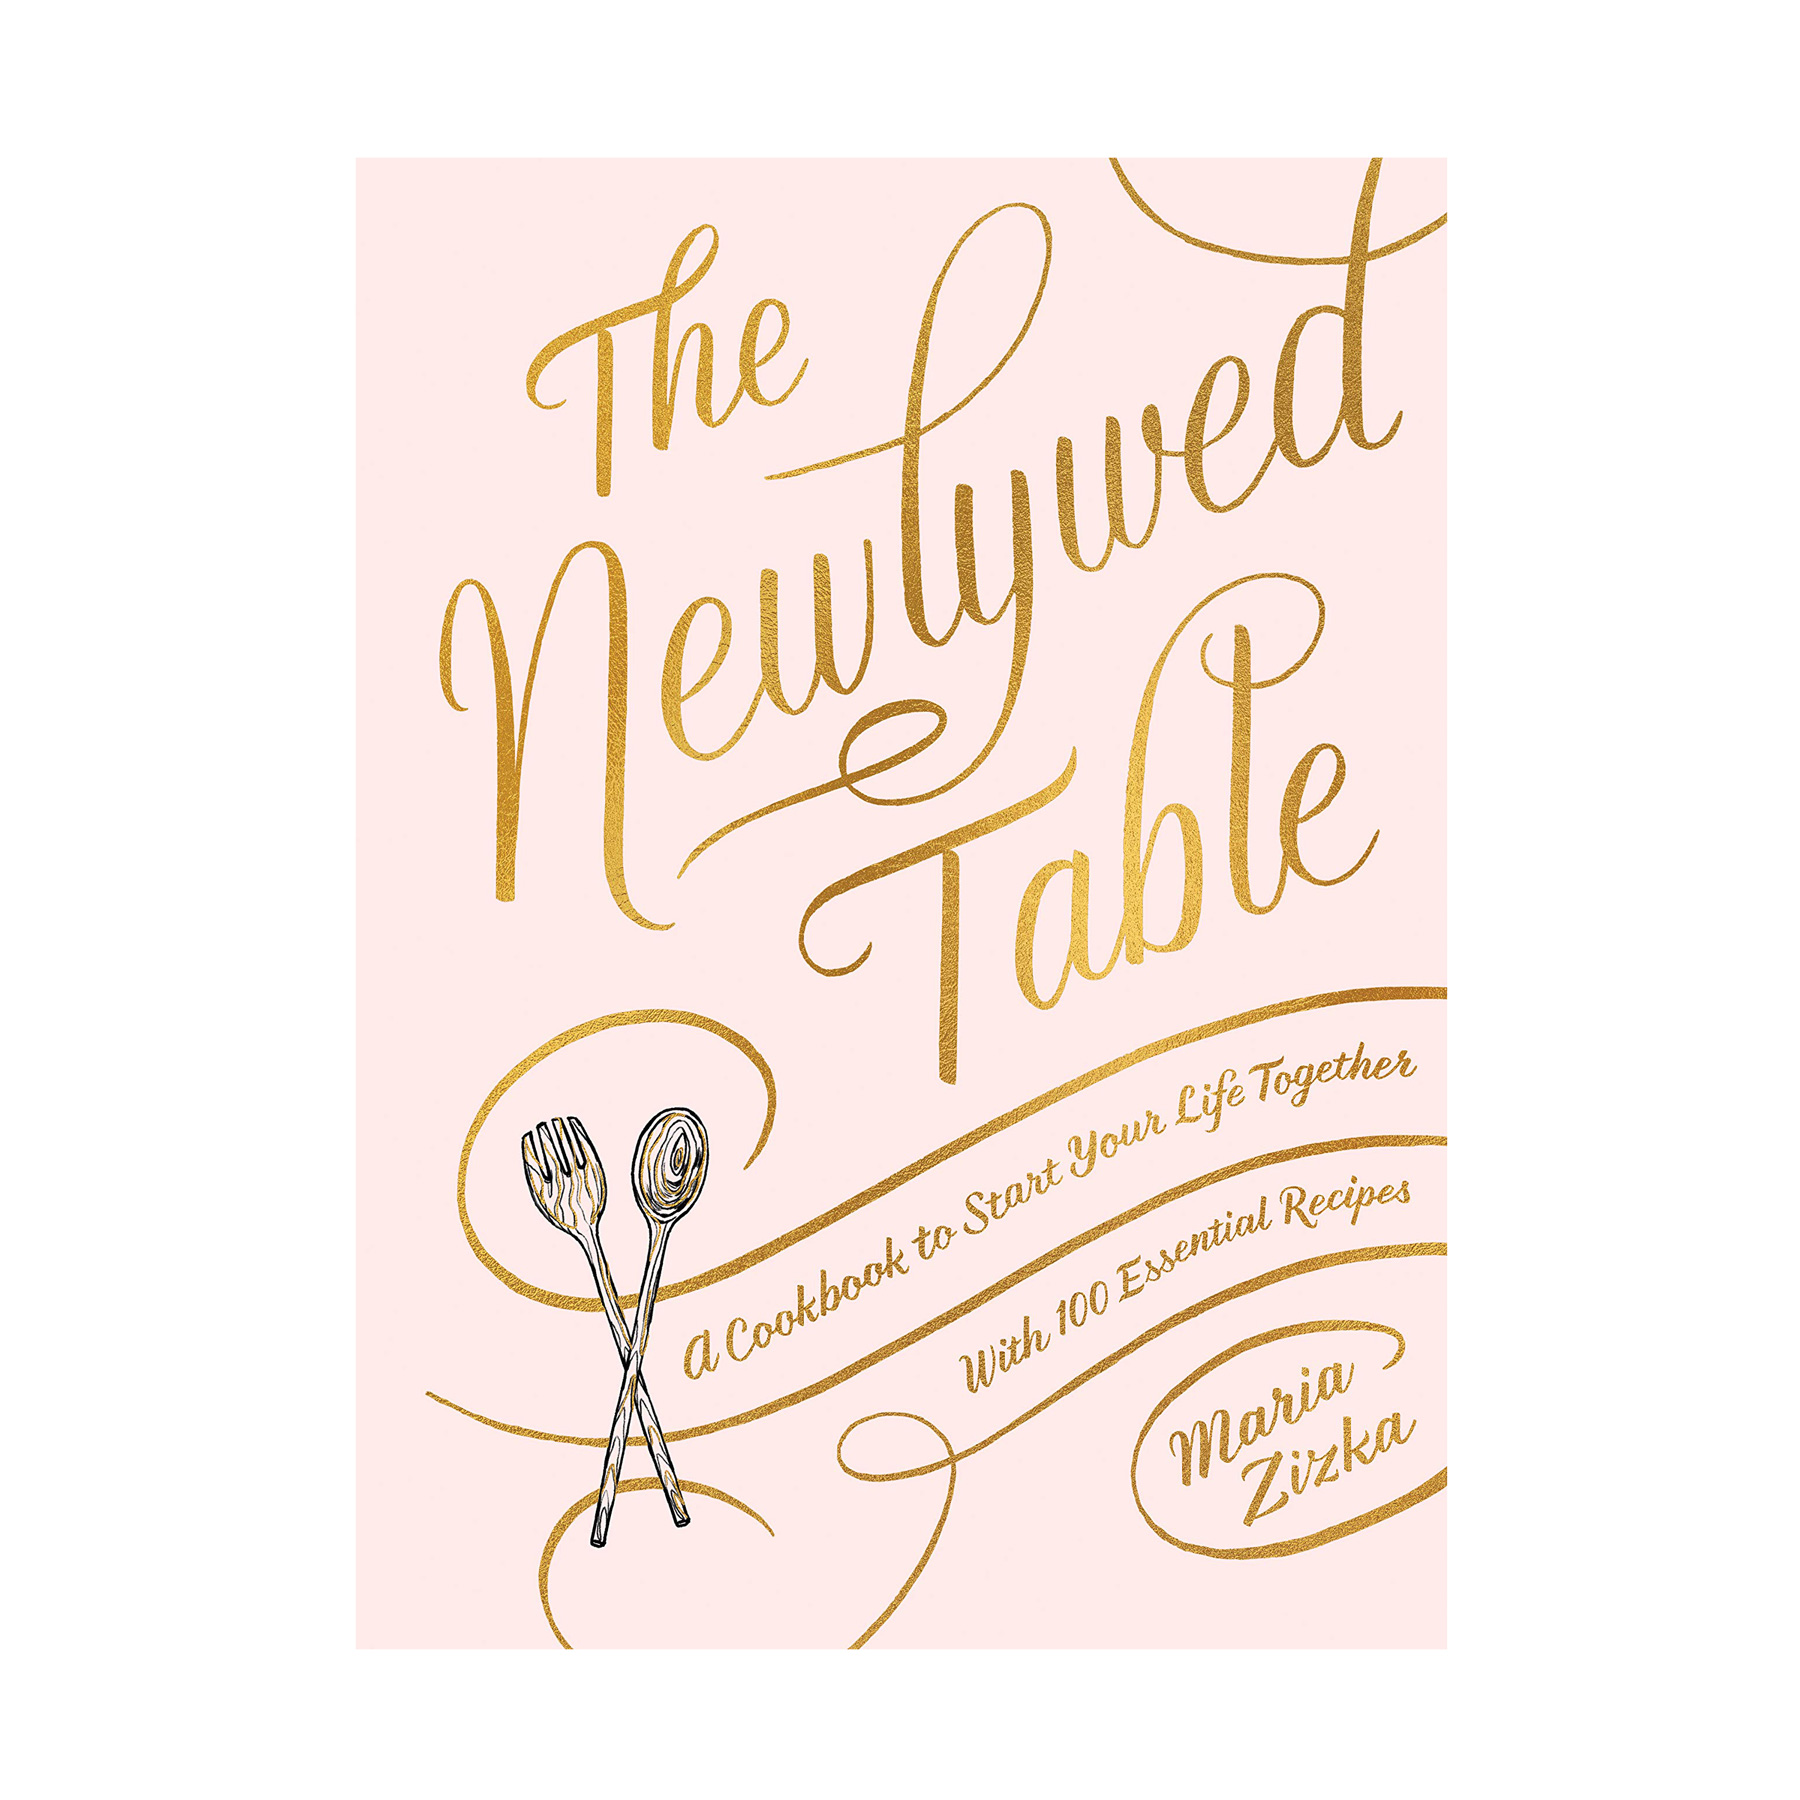 Engagement Gift Ideas: The Newly Wed Table cookbook for just engaged and married couples